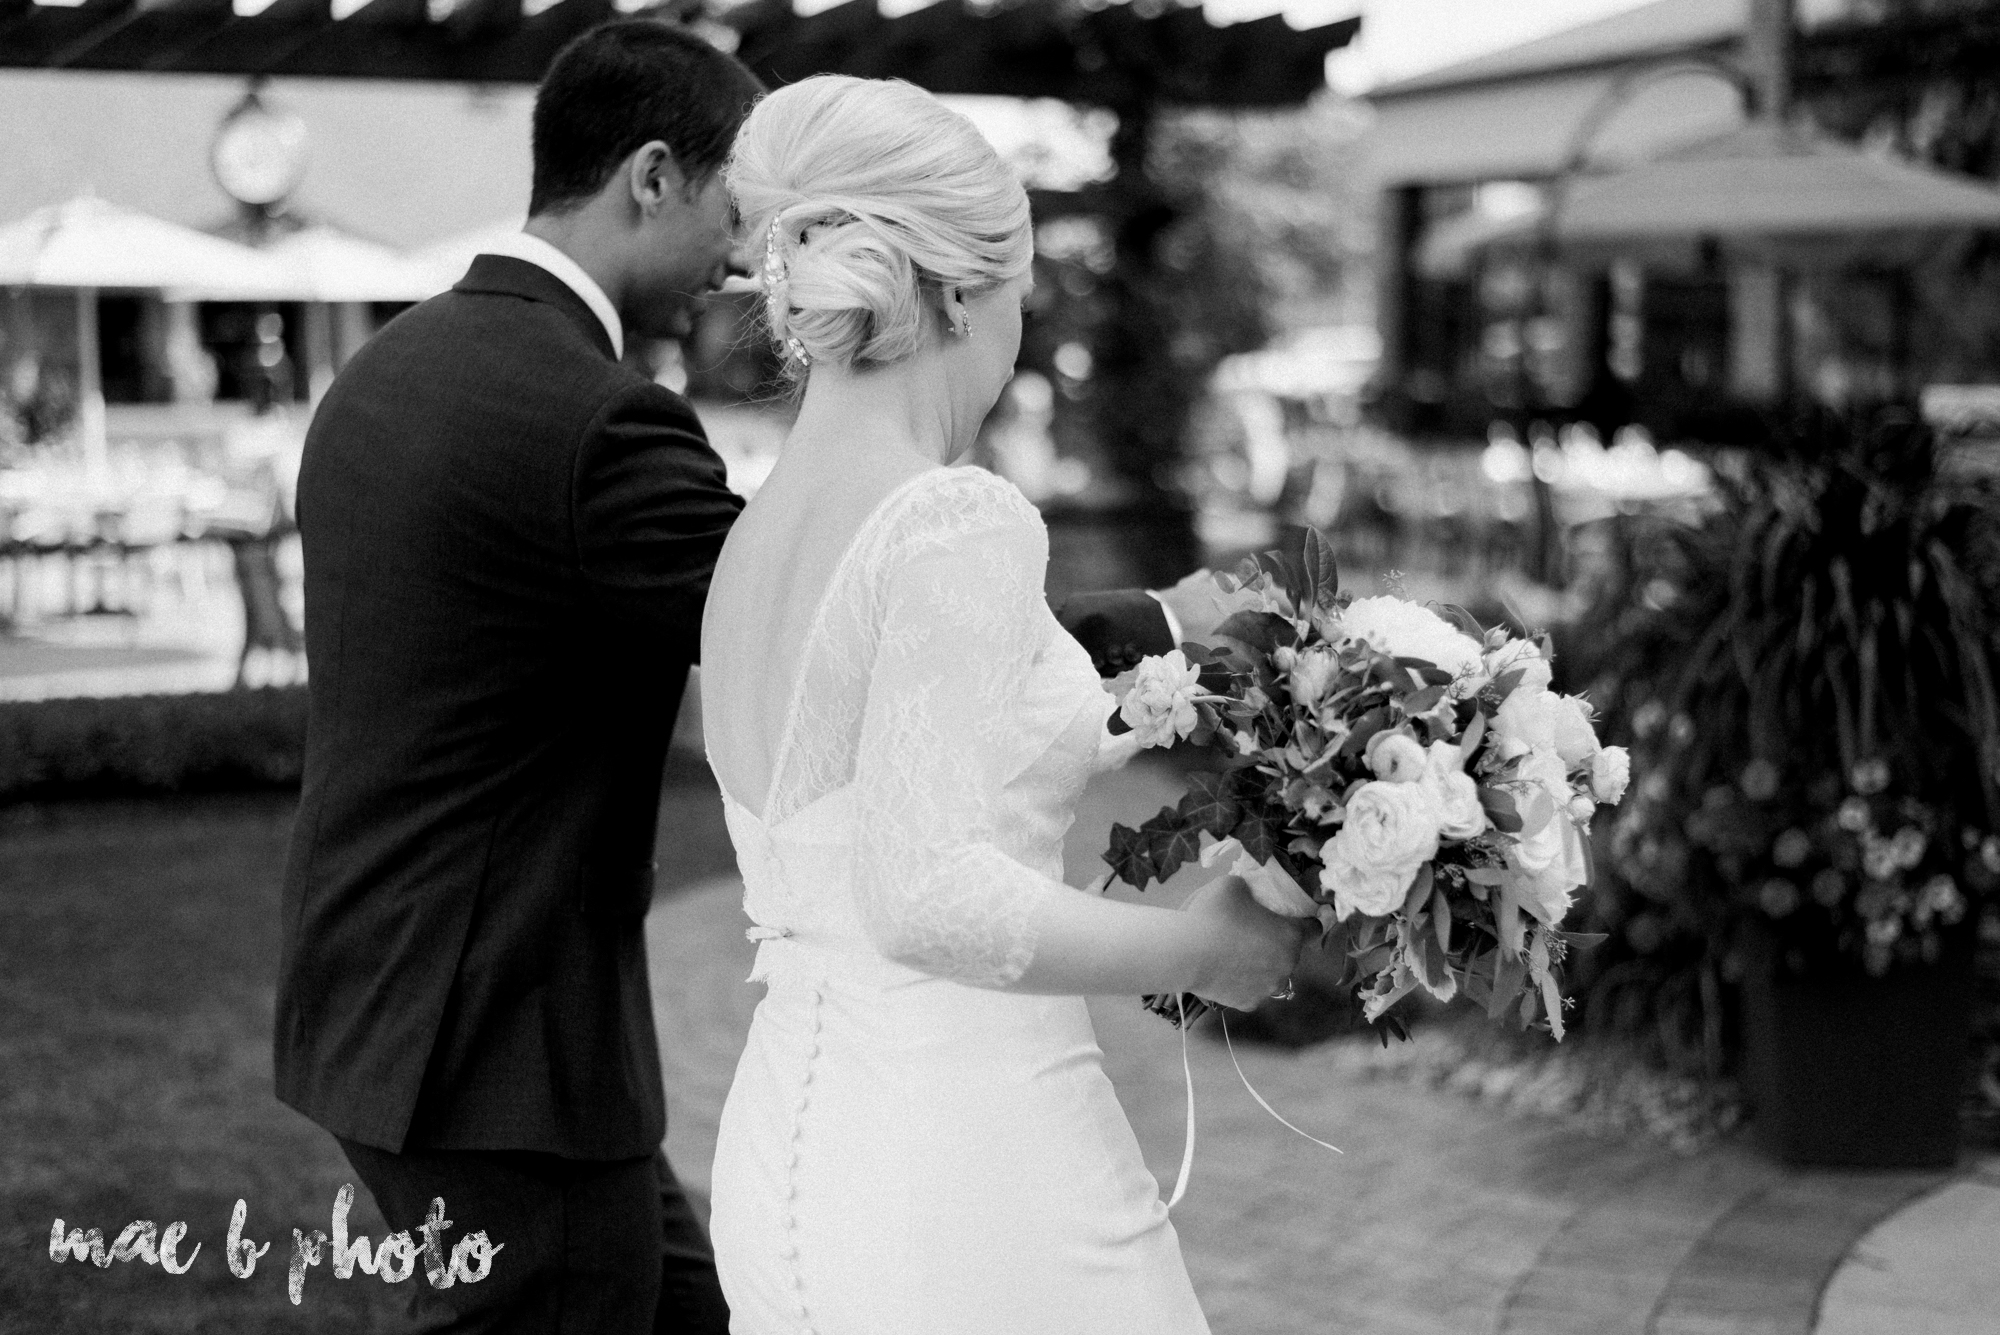 emily and michael's industrial chic summer country club wedding at the lake club in poland ohio photographed by cleveland wedding photographer mae b photo-102.jpg